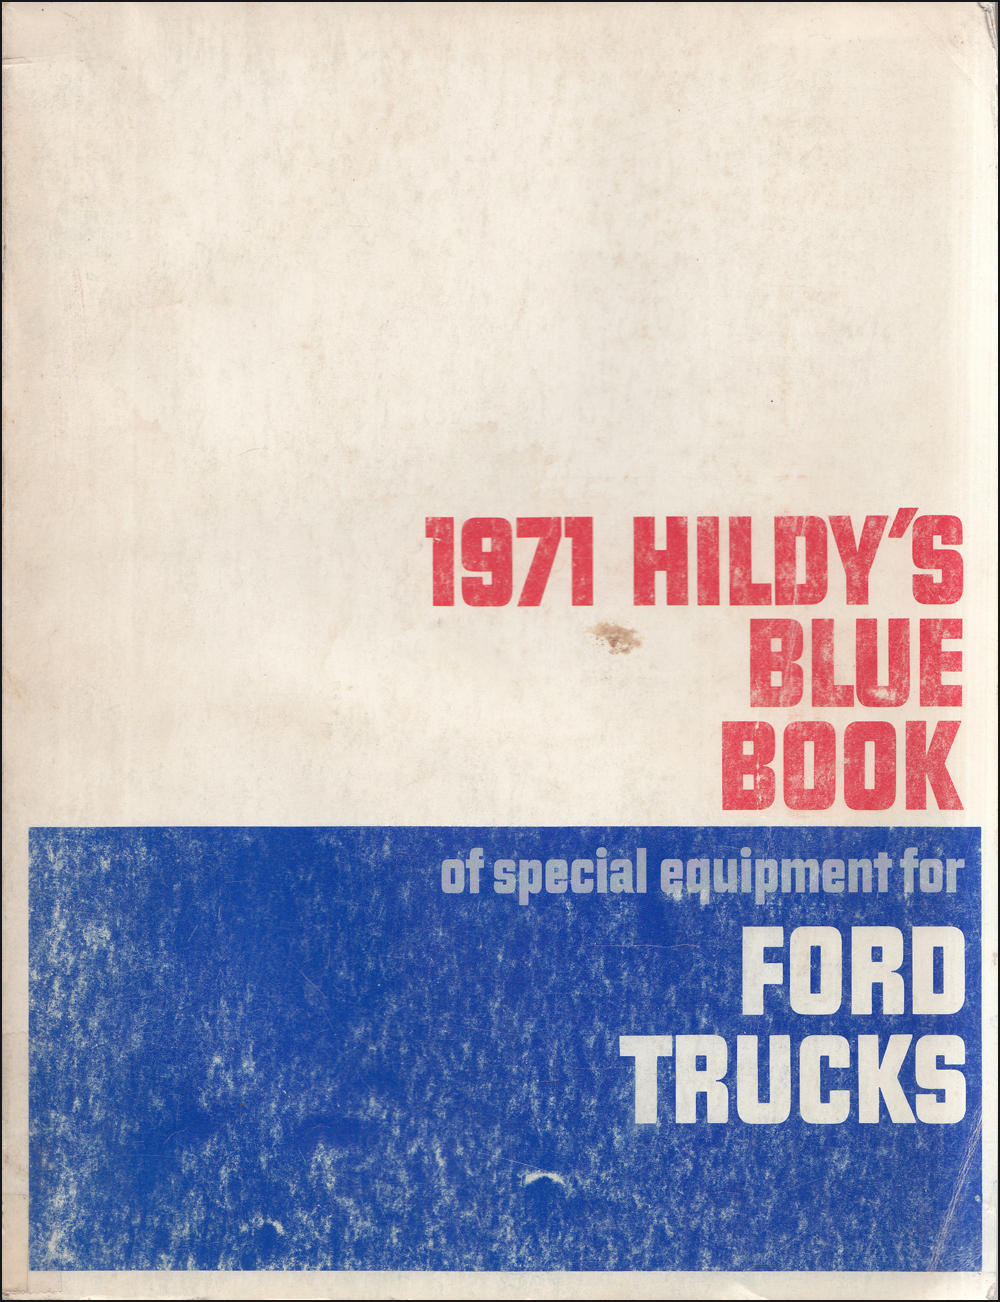 1971 Ford Truck Hildy's Blue Book Special Equipment Dealer Album